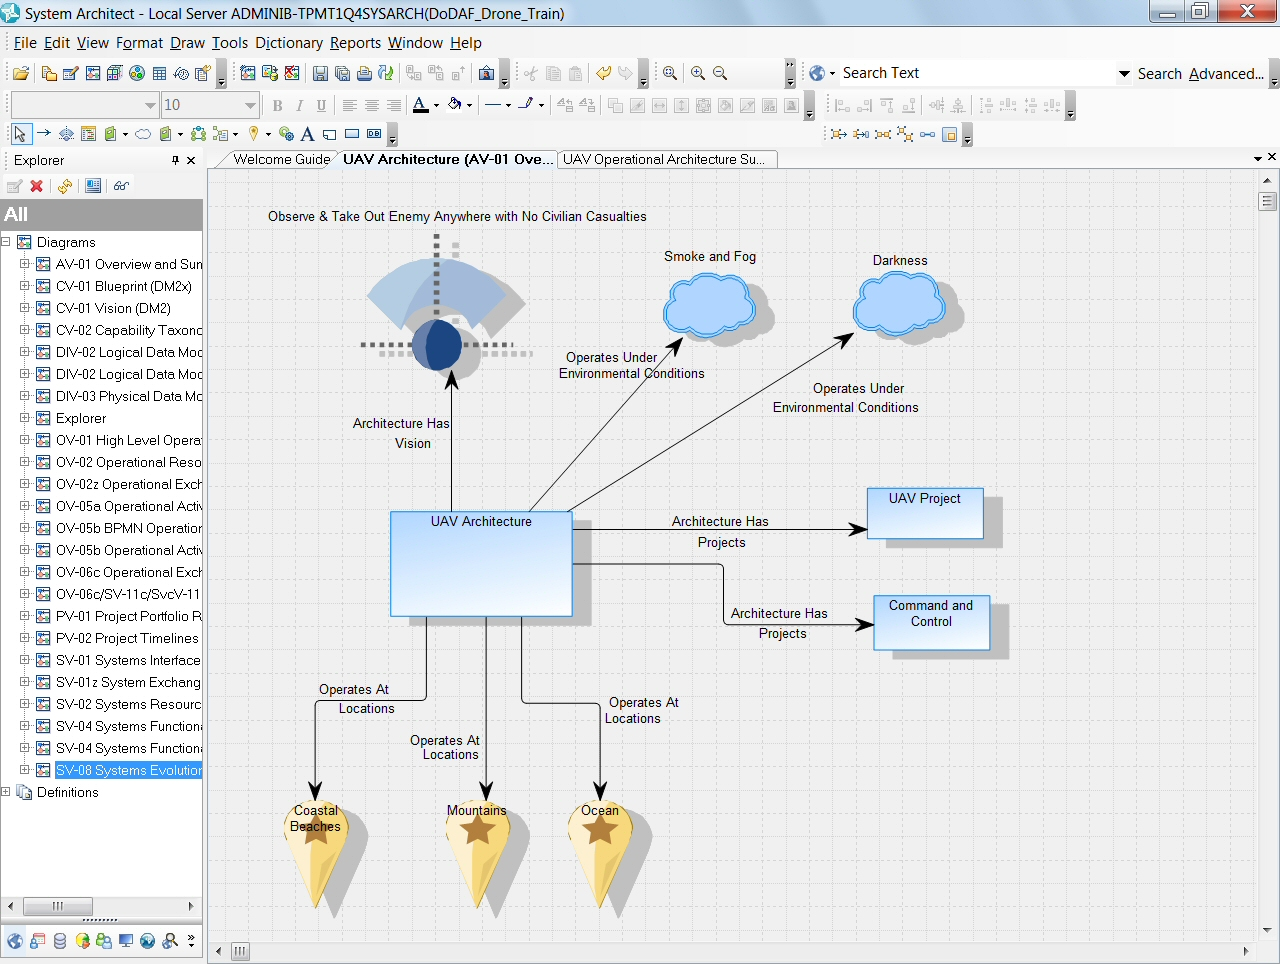 UNICOM Systems TeamBLUE System Architect - Cognos architecture diagram